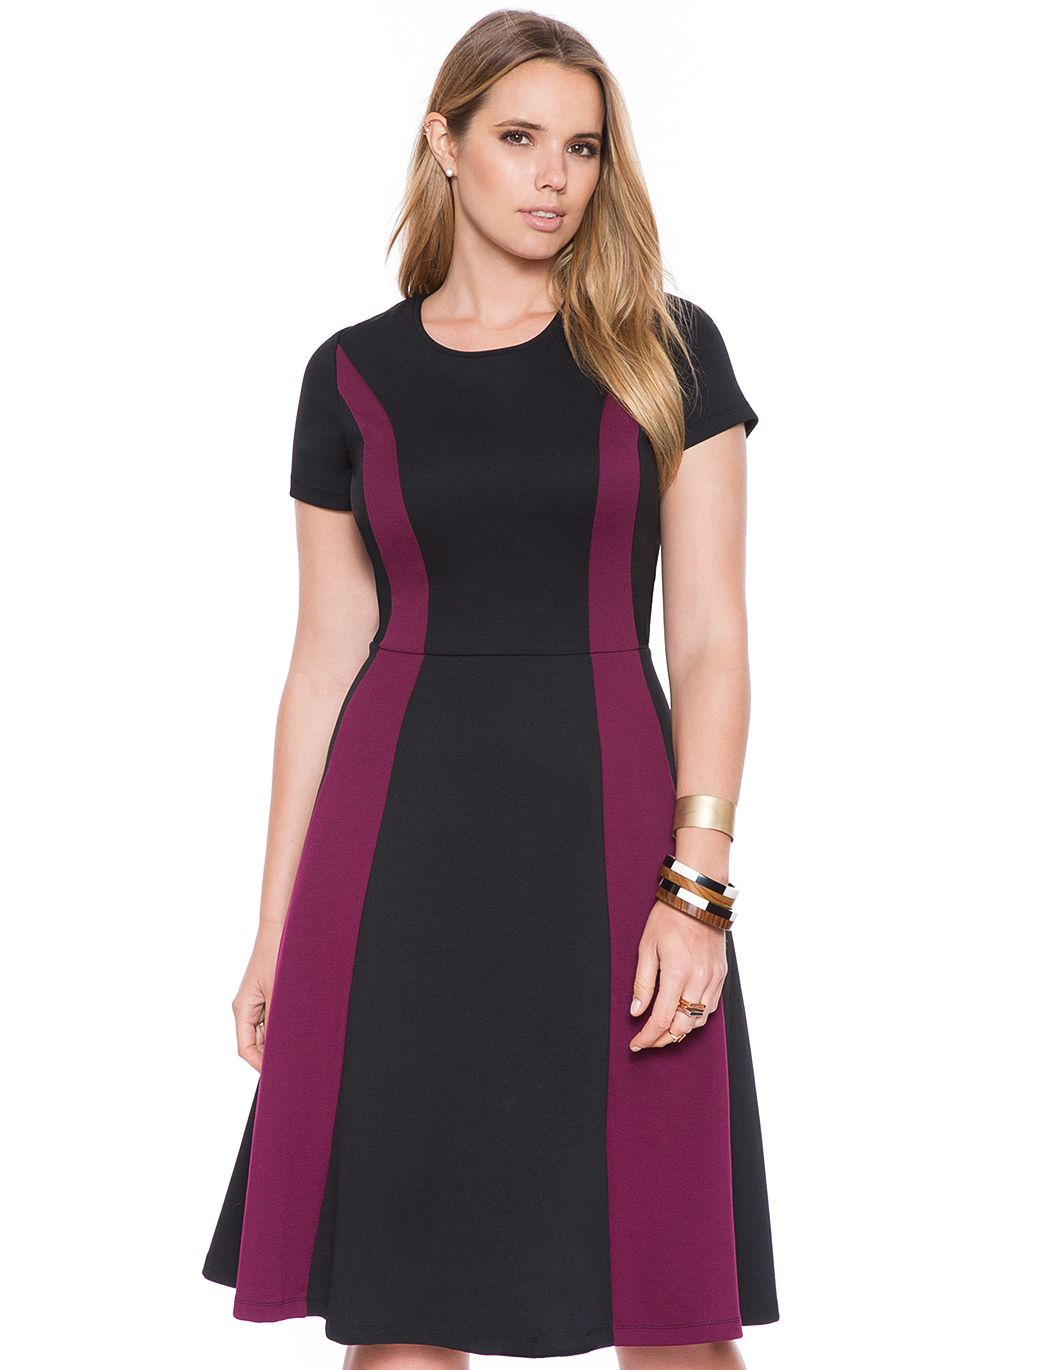 Colorblock Fit and Flare Dress Women s Plus Size Dresses